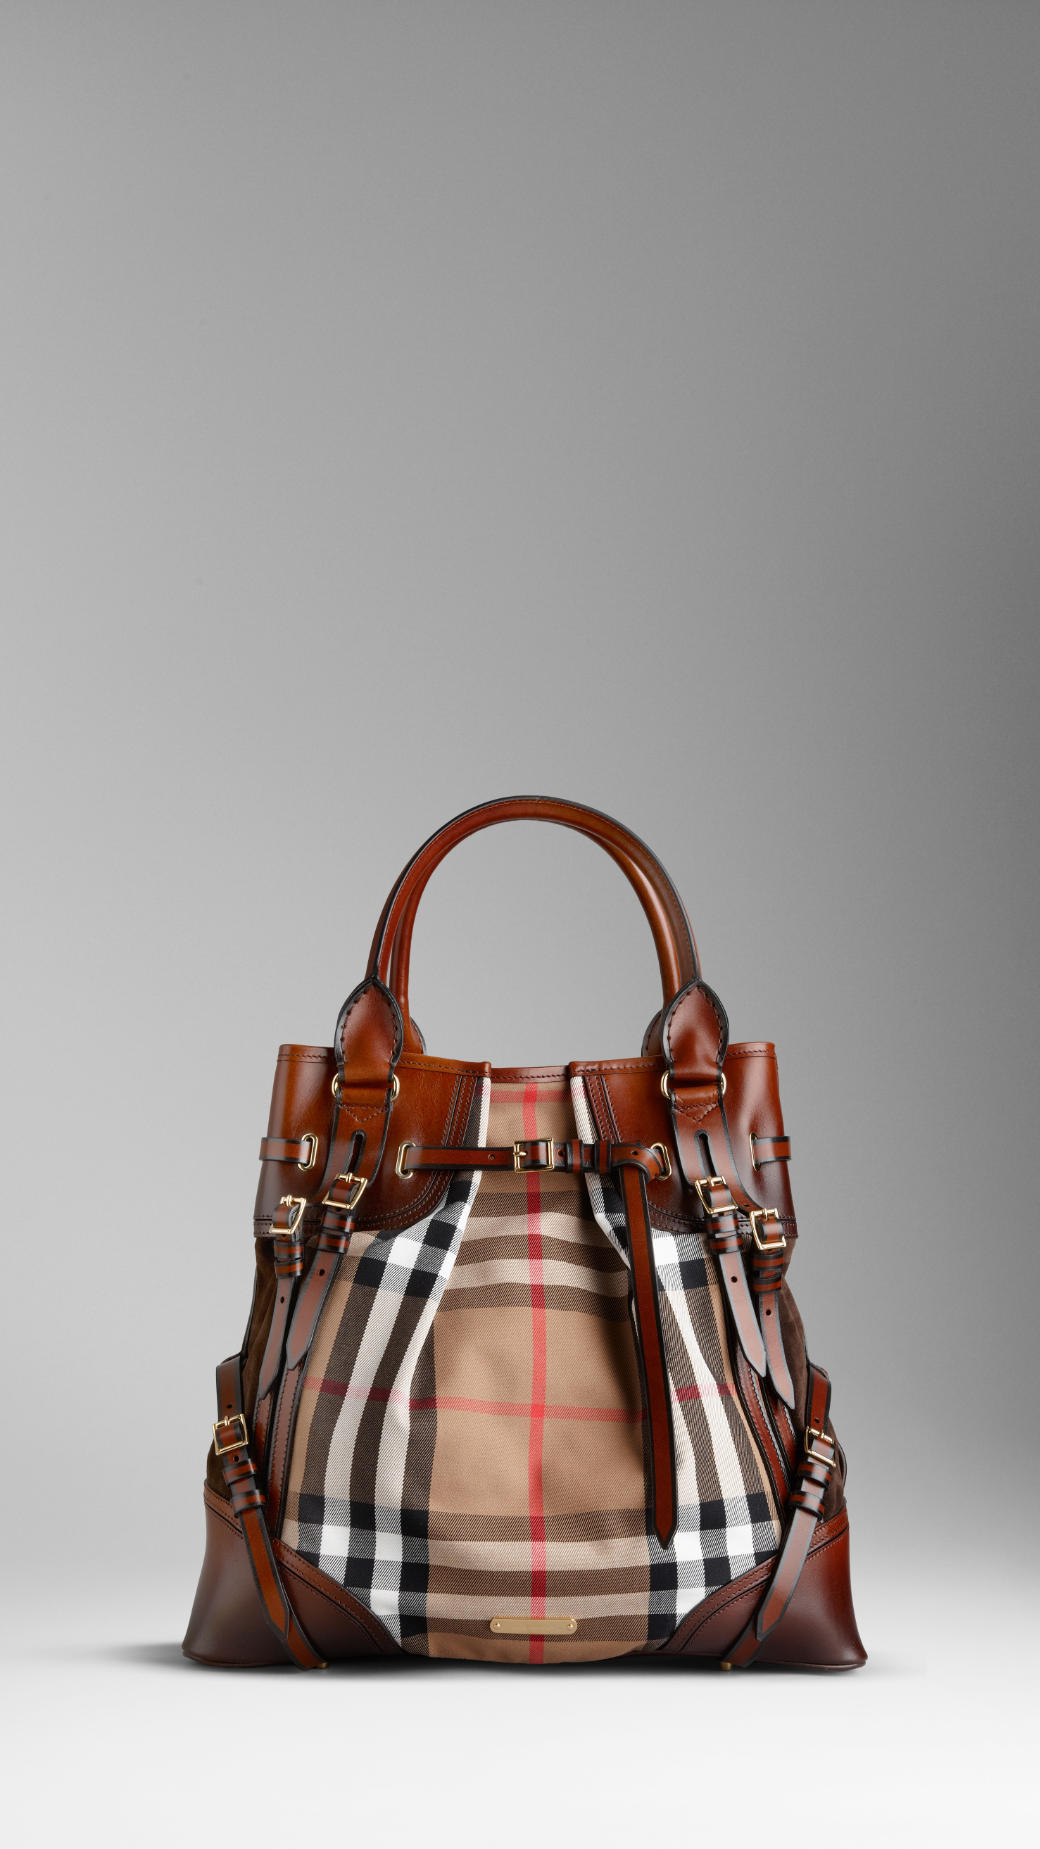 Lyst - Burberry Large Bridle House Check Whipstitch Tote Bag in Brown a77ff352607b3